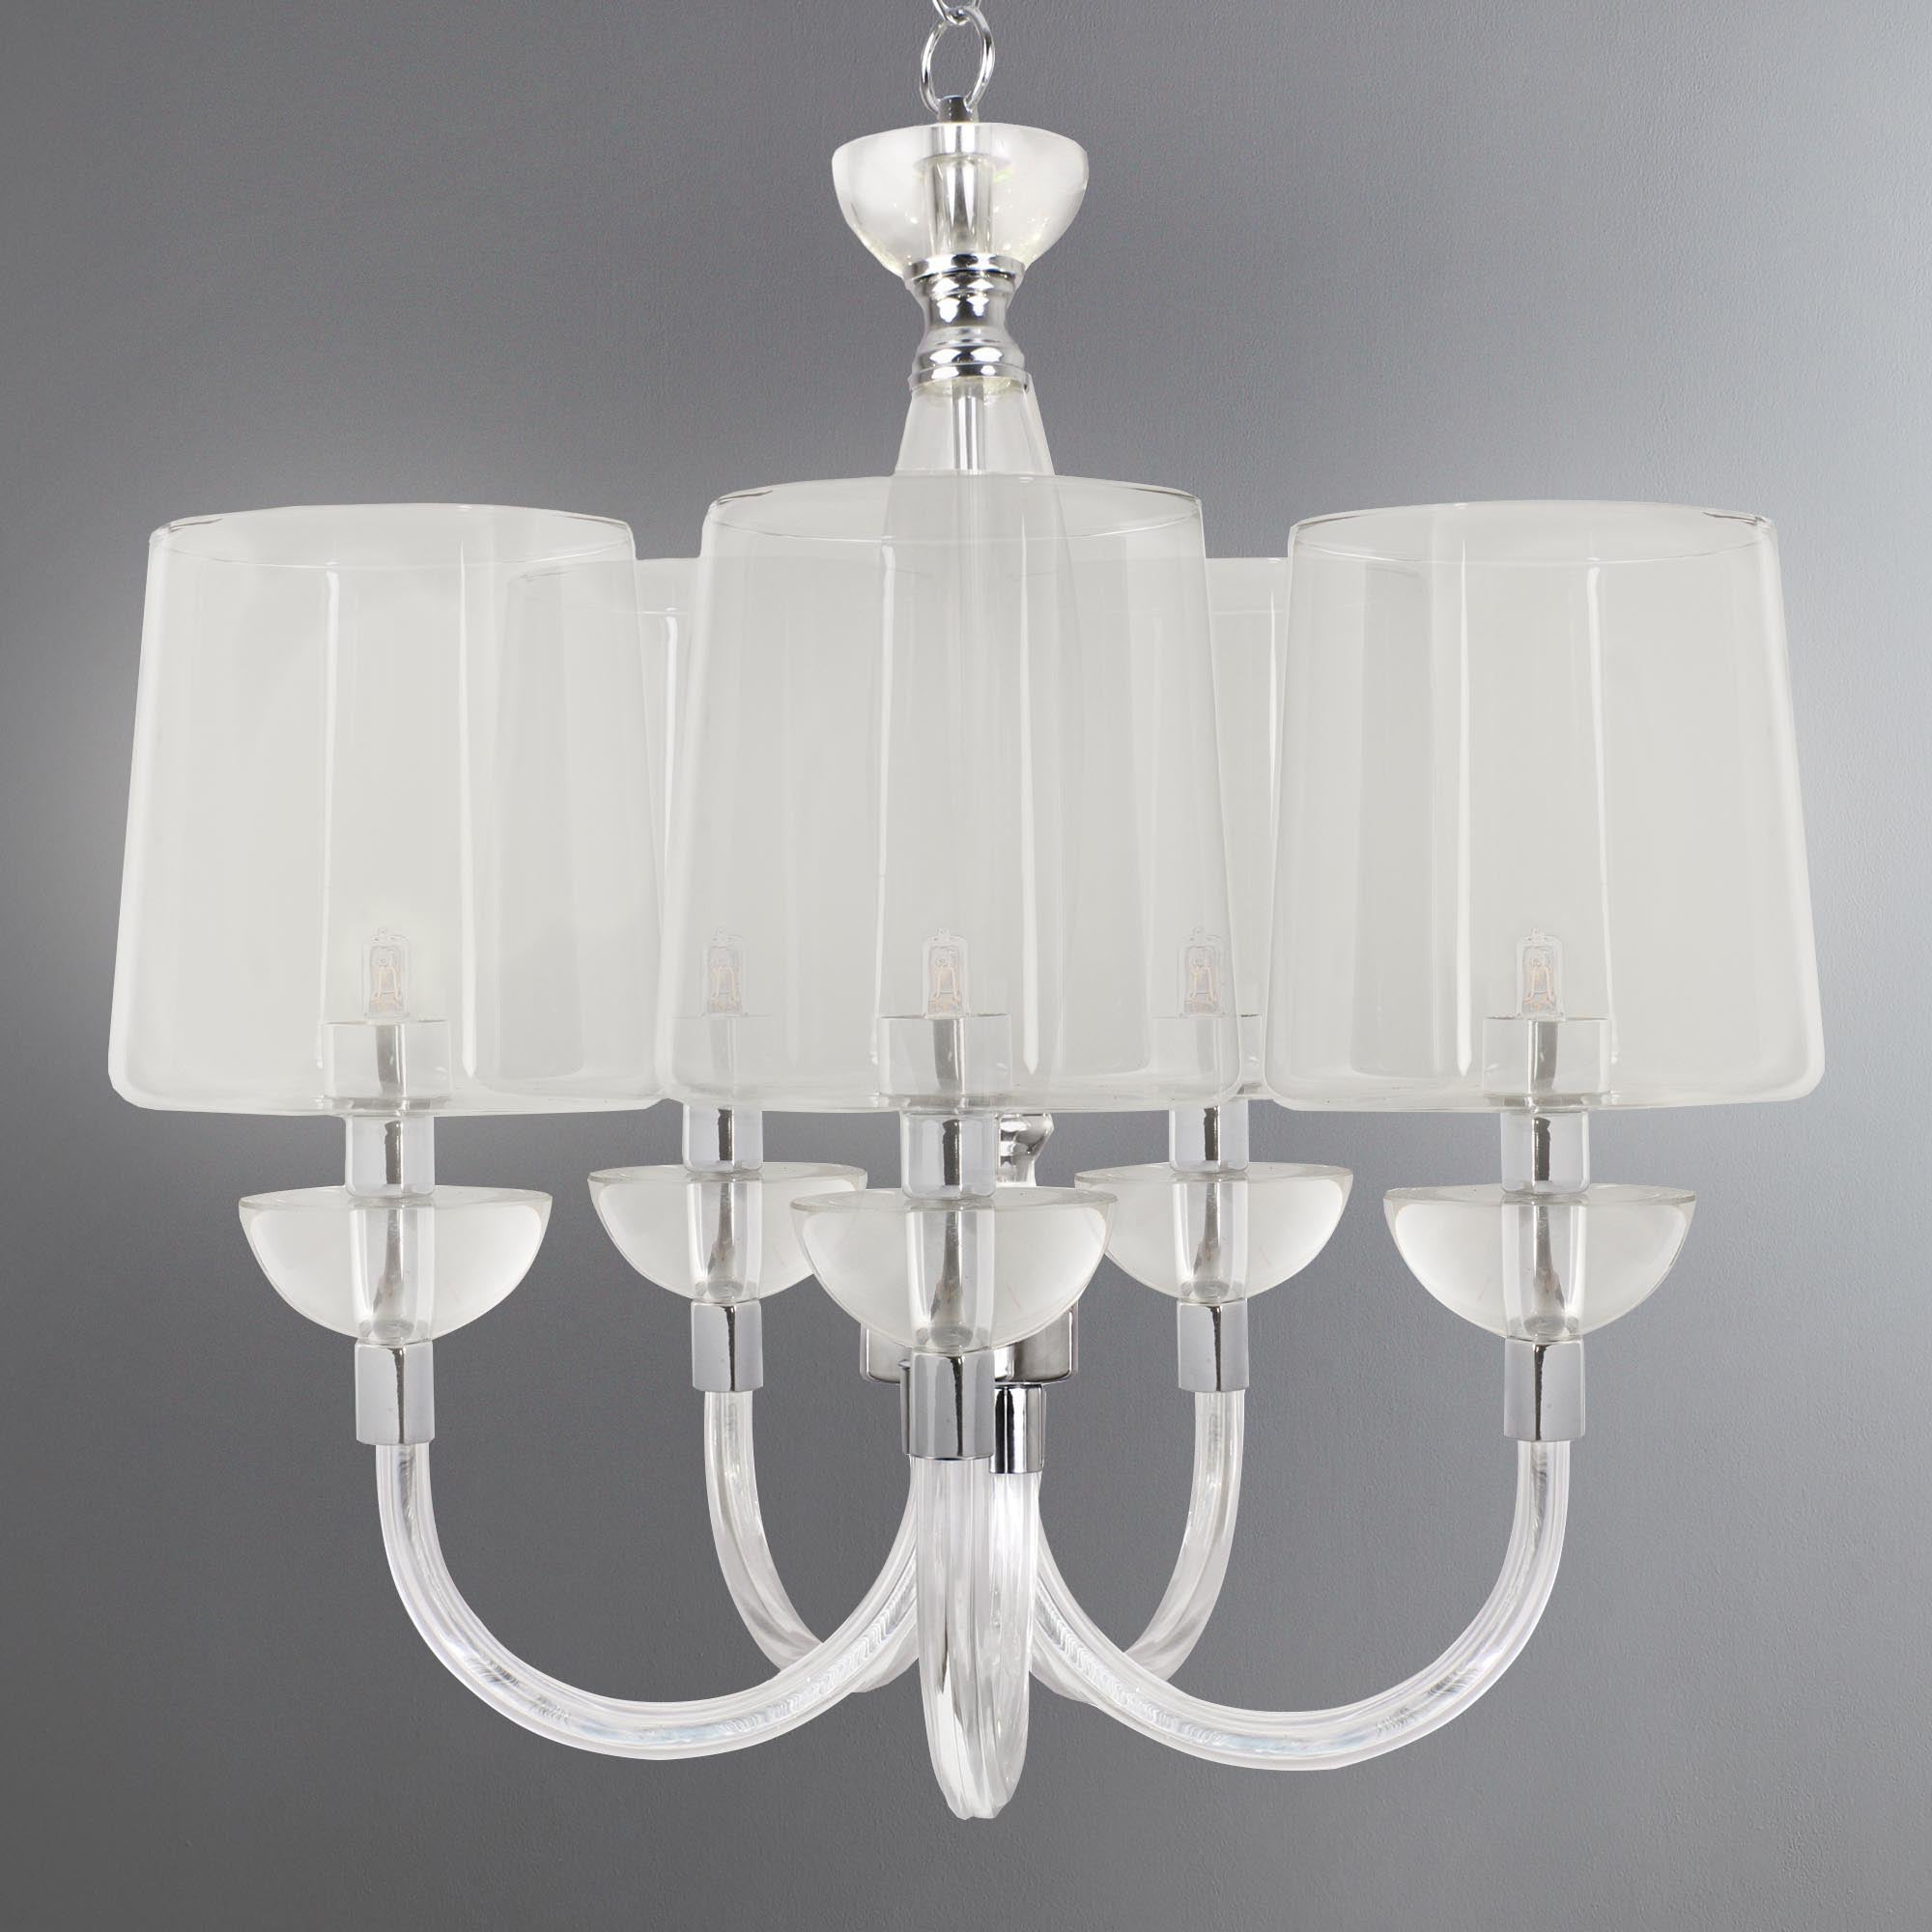 Photo of Andon nickel 5 light glass fitting clear